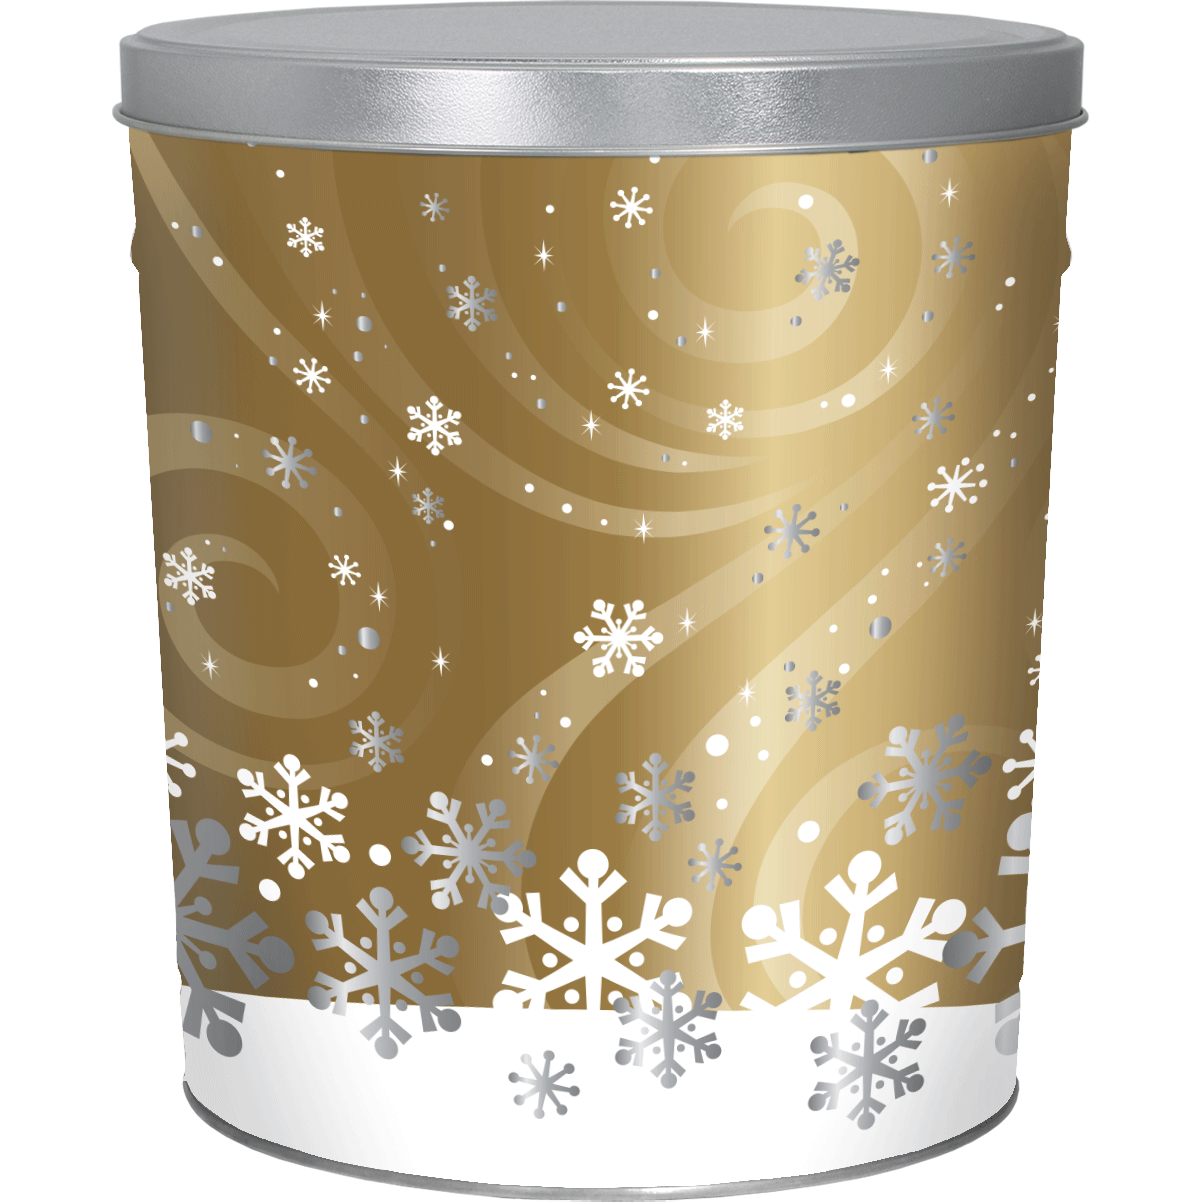 3LB Swirling Snow Tin of Chesapeake Crab